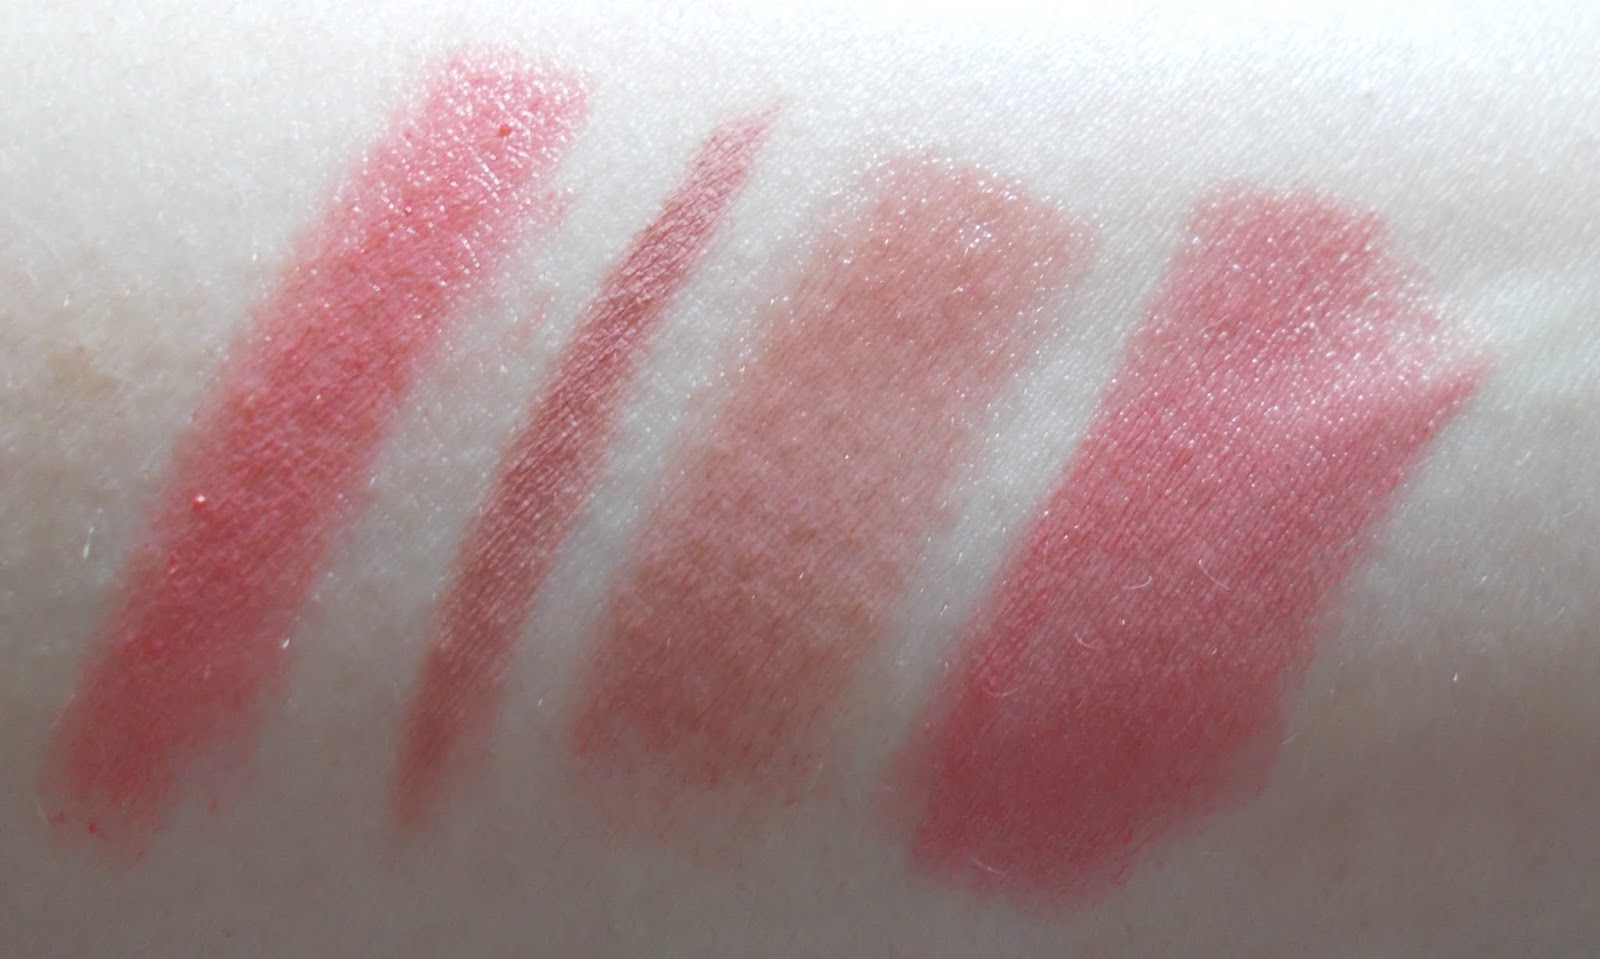 swatches colourpop lippie stix crunch charlotte tilbury lip cheat pillowtalk urban decay ex girlfriend revlon ultra hd rose